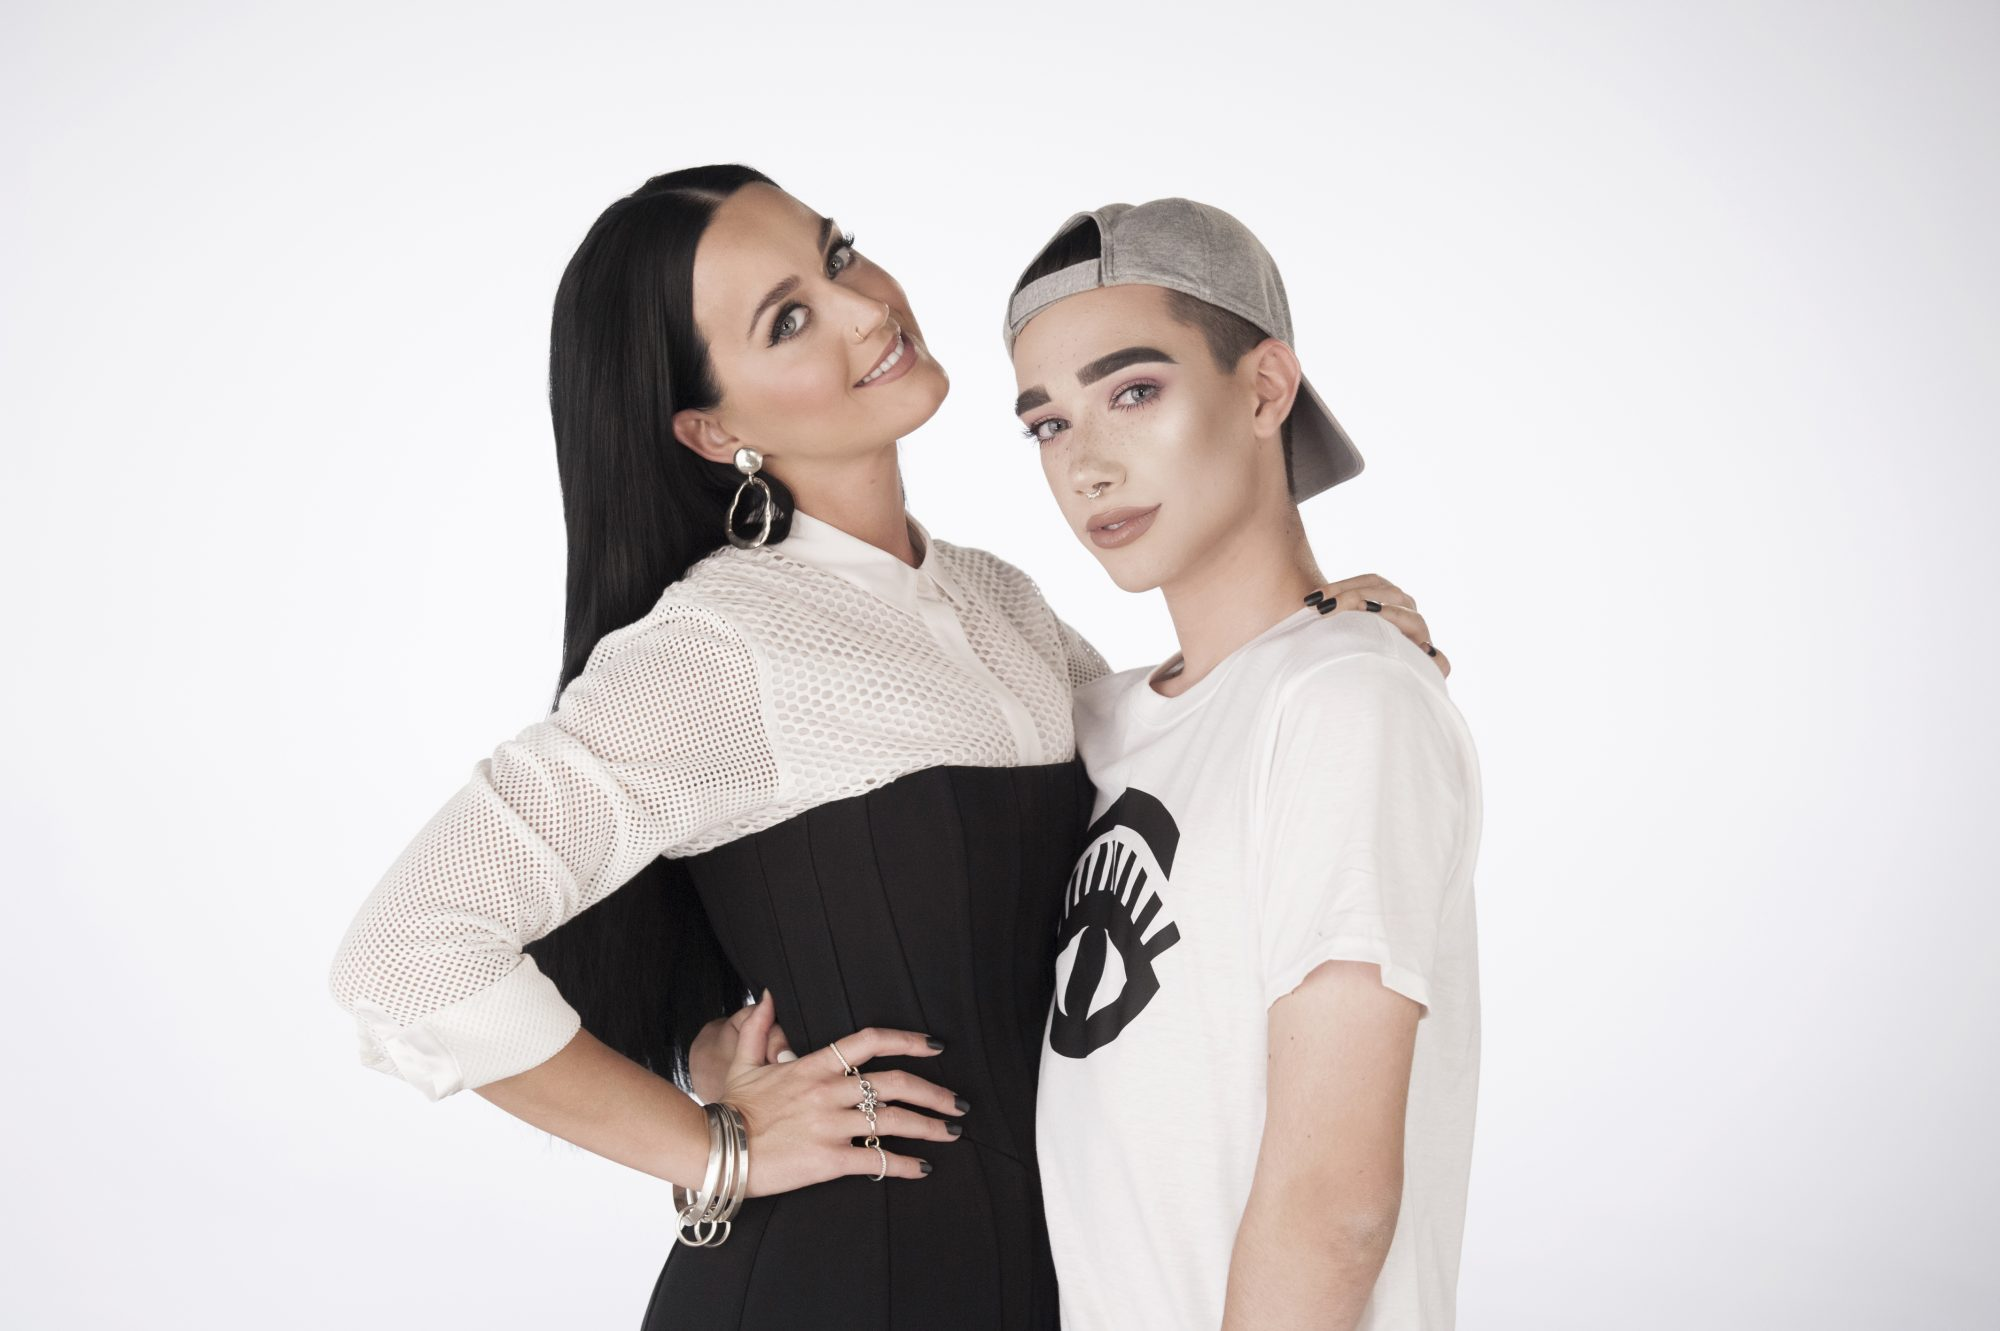 covergirl-katy-perry-and-james-charles